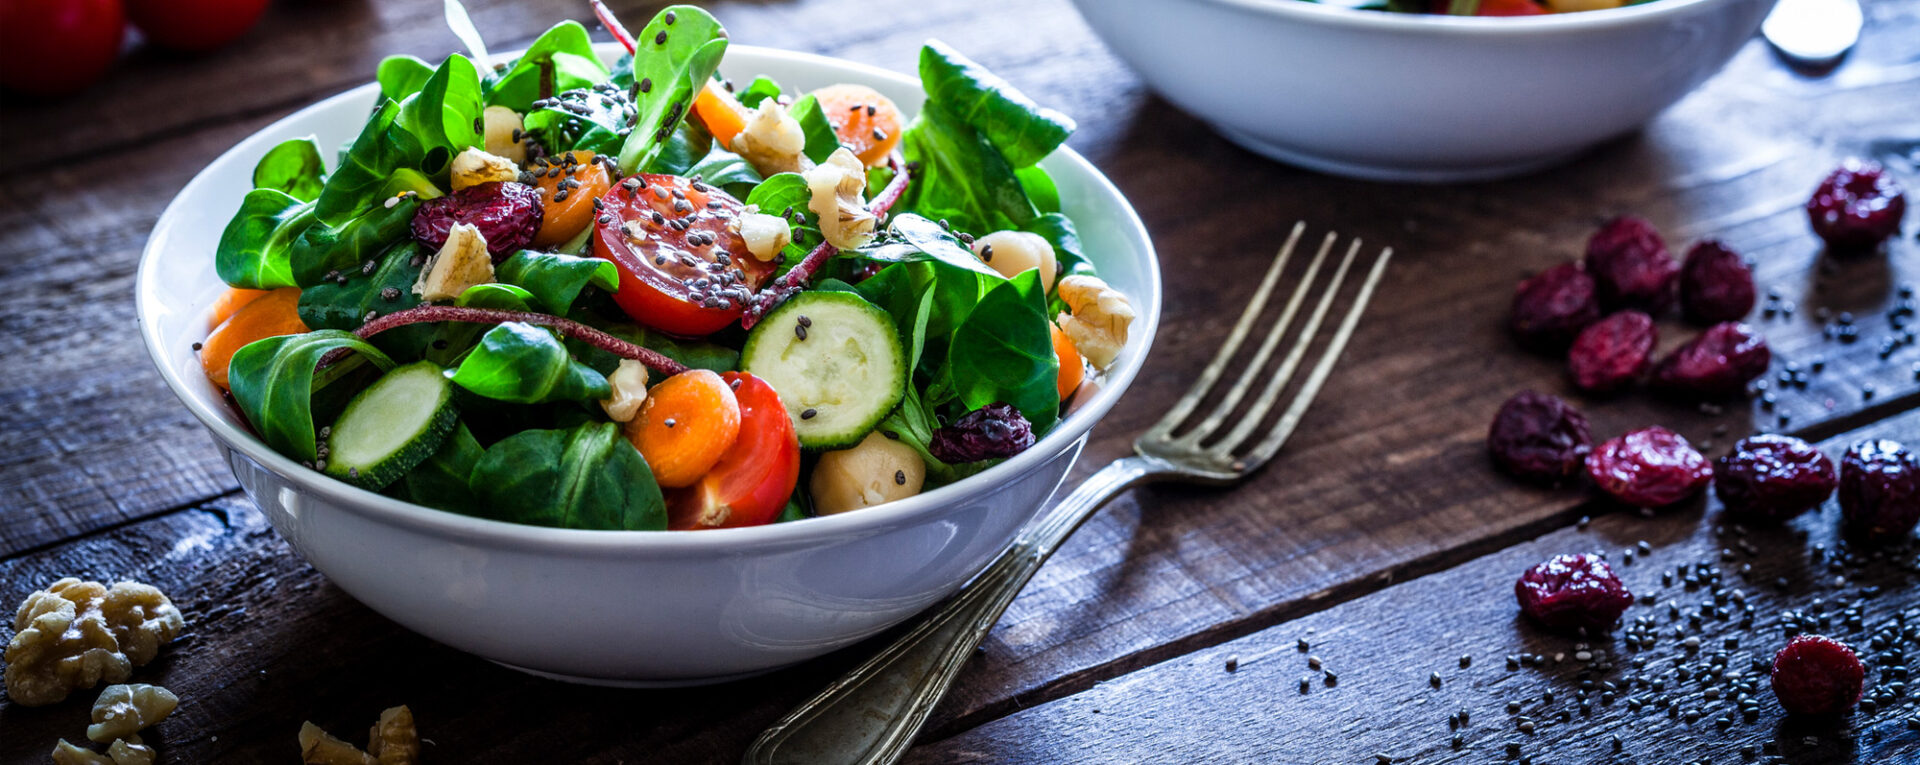 Salads make perfect patio companions for summer dining